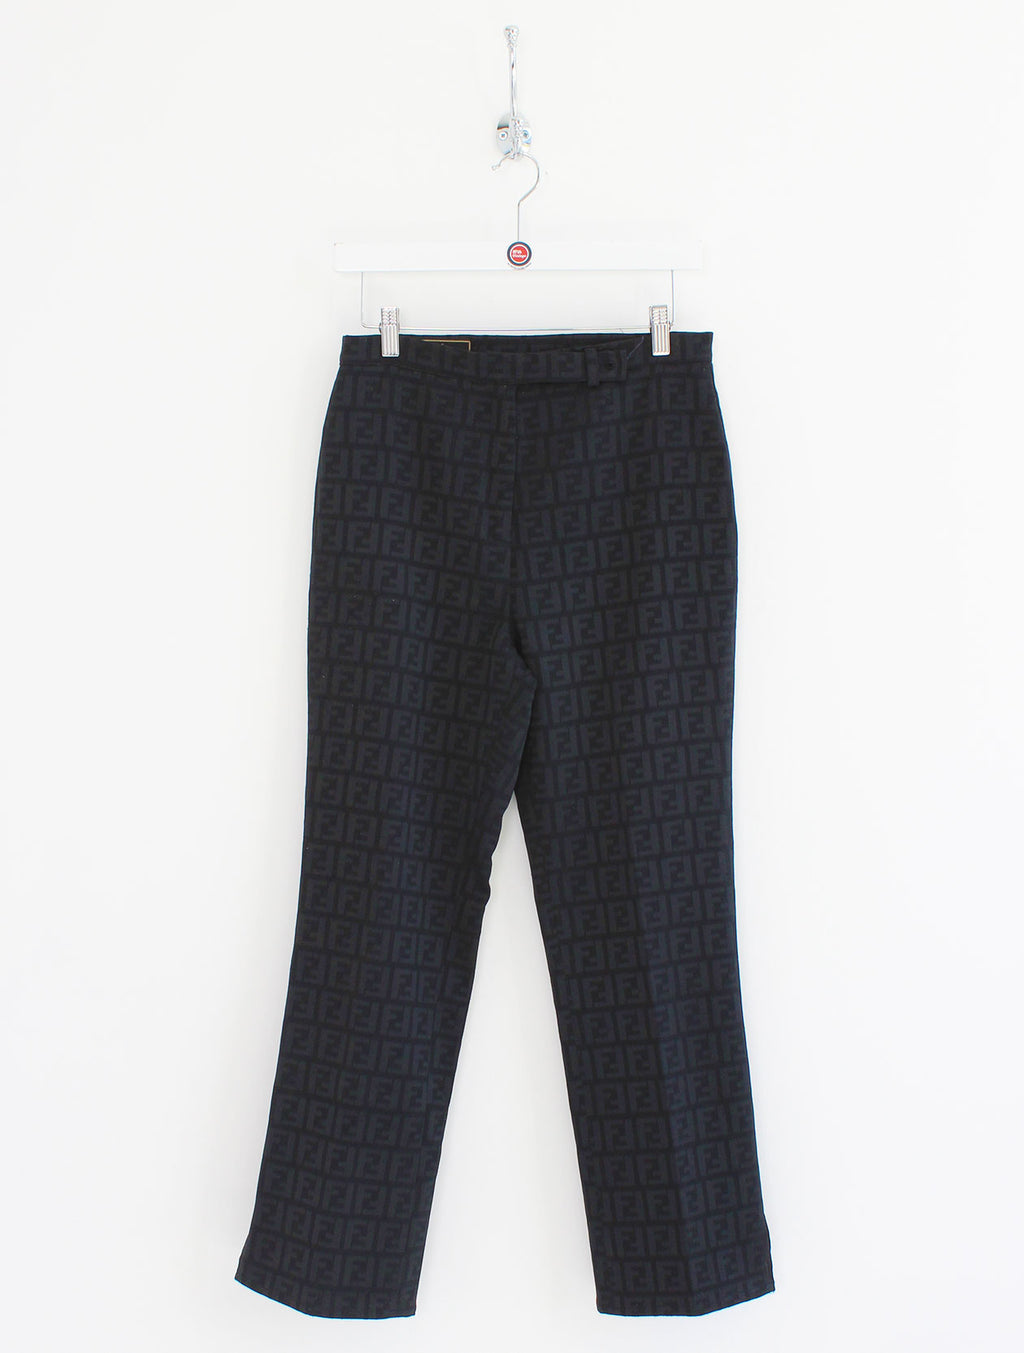 Women's Fendi Monogram Trousers (26)